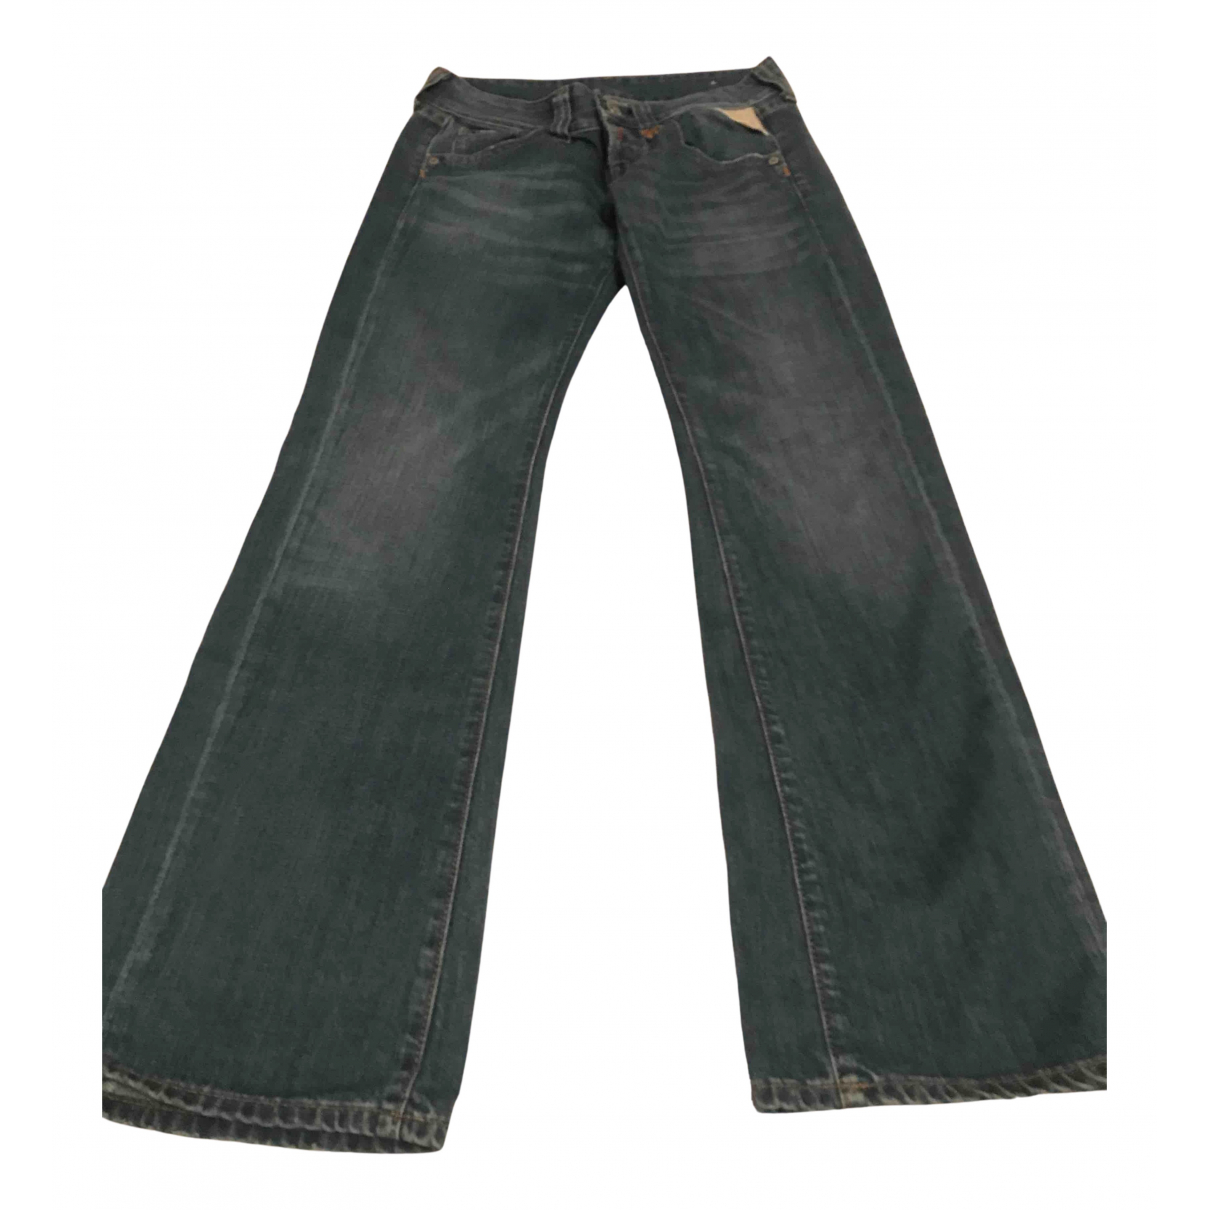 Replay N Blue Cotton Jeans for Women 26 US